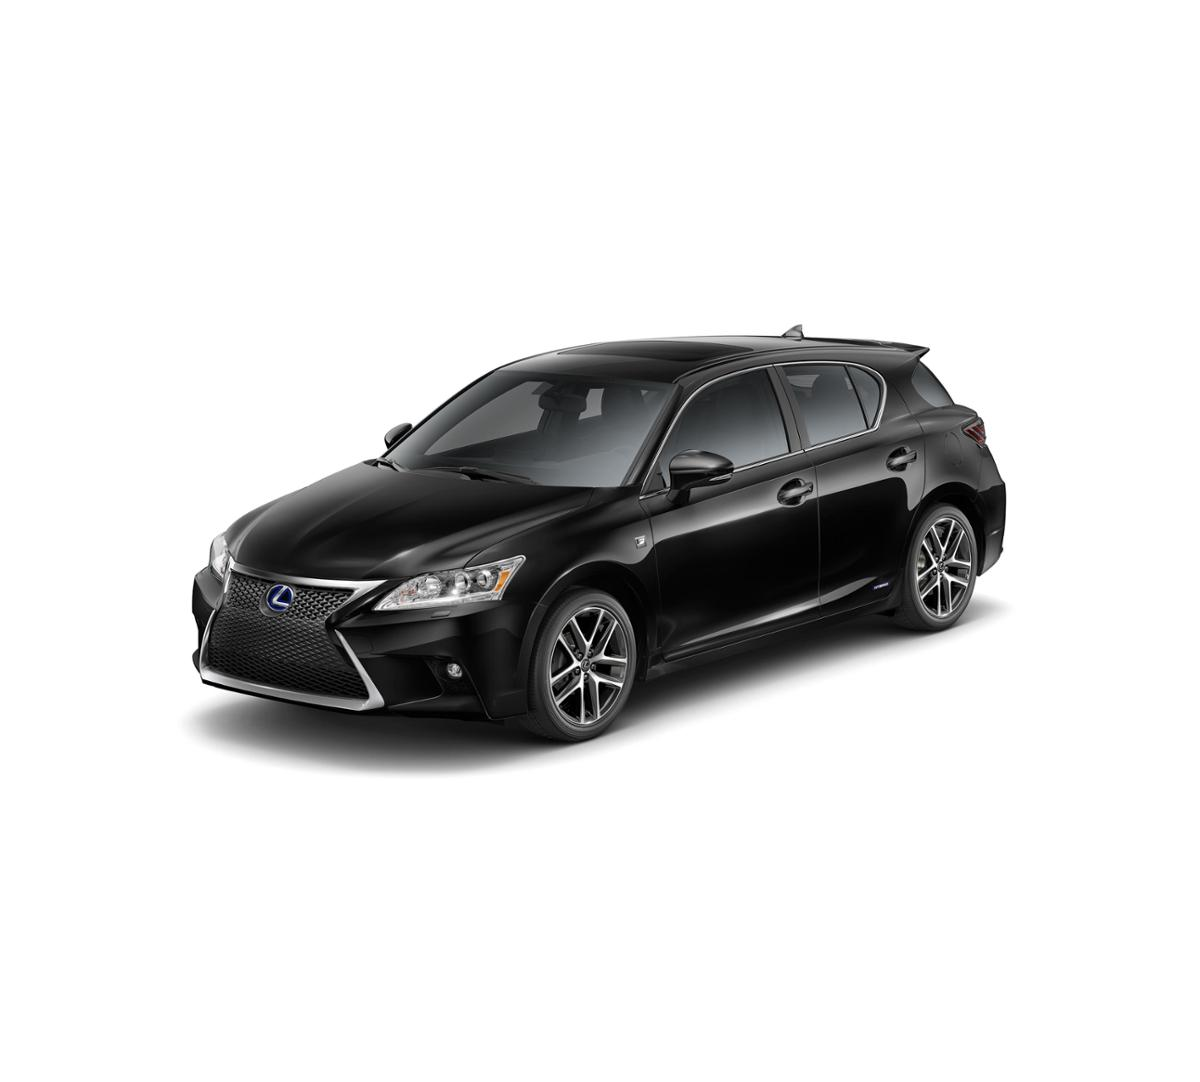 2017 lexus ct 200h f sport in obsidian for sale in ca jthkd5bh0h2298013. Black Bedroom Furniture Sets. Home Design Ideas